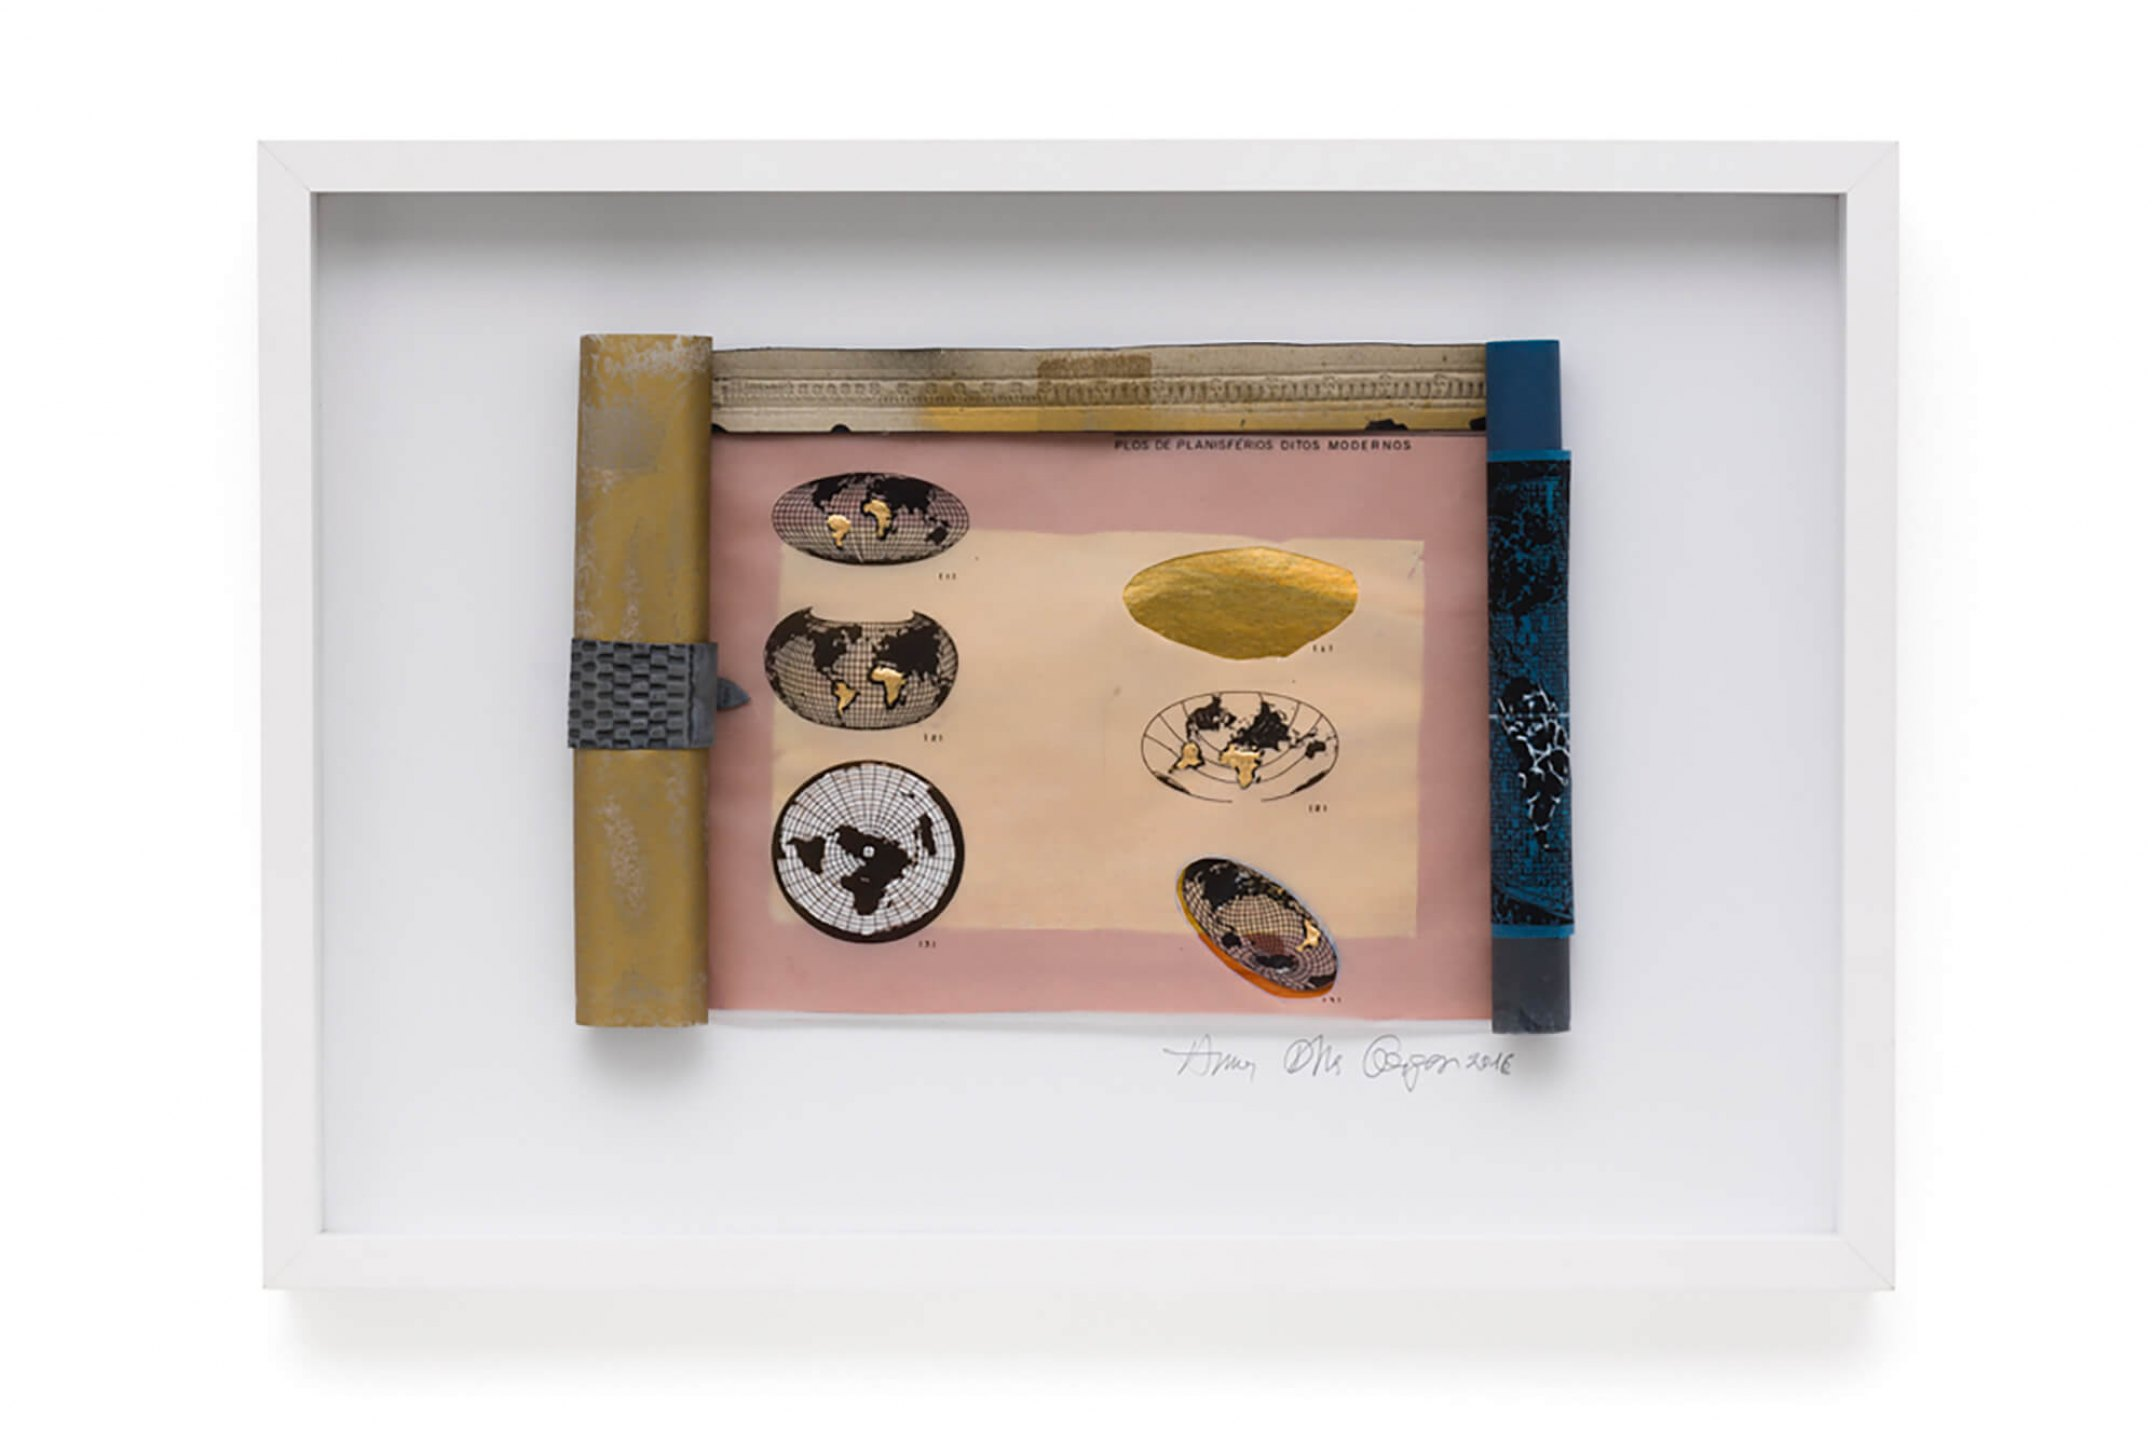 Anna Bella Geiger, <em>Rolo Ocidental com 5 mapinhas pintados à mão</em>,&nbsp;2016,parchment style sheet, chinese rice paper with print in gold leaf, collage, nankin drawing, oil paint and engraving in lead sheet, 50 ×&nbsp;70 × 5 cm - Mendes Wood DM